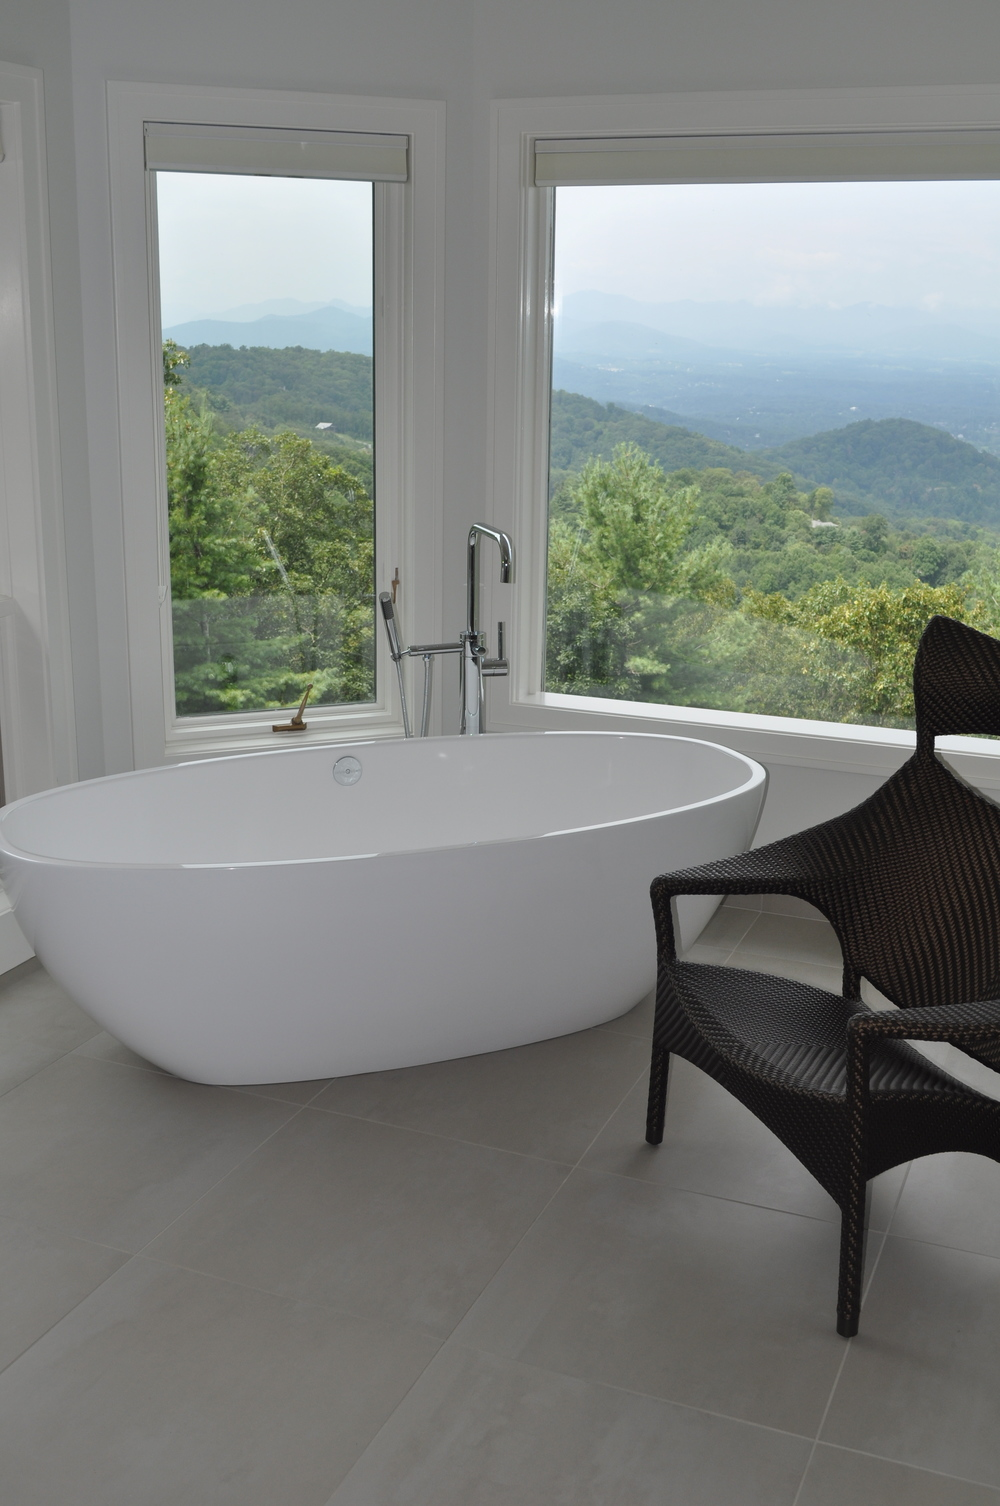 "Boone/Jamison Residence. Beautiful freestanding tub with amazing views set atop 24""x24"" porcelain tile. This bathroom has a very modern clean look"